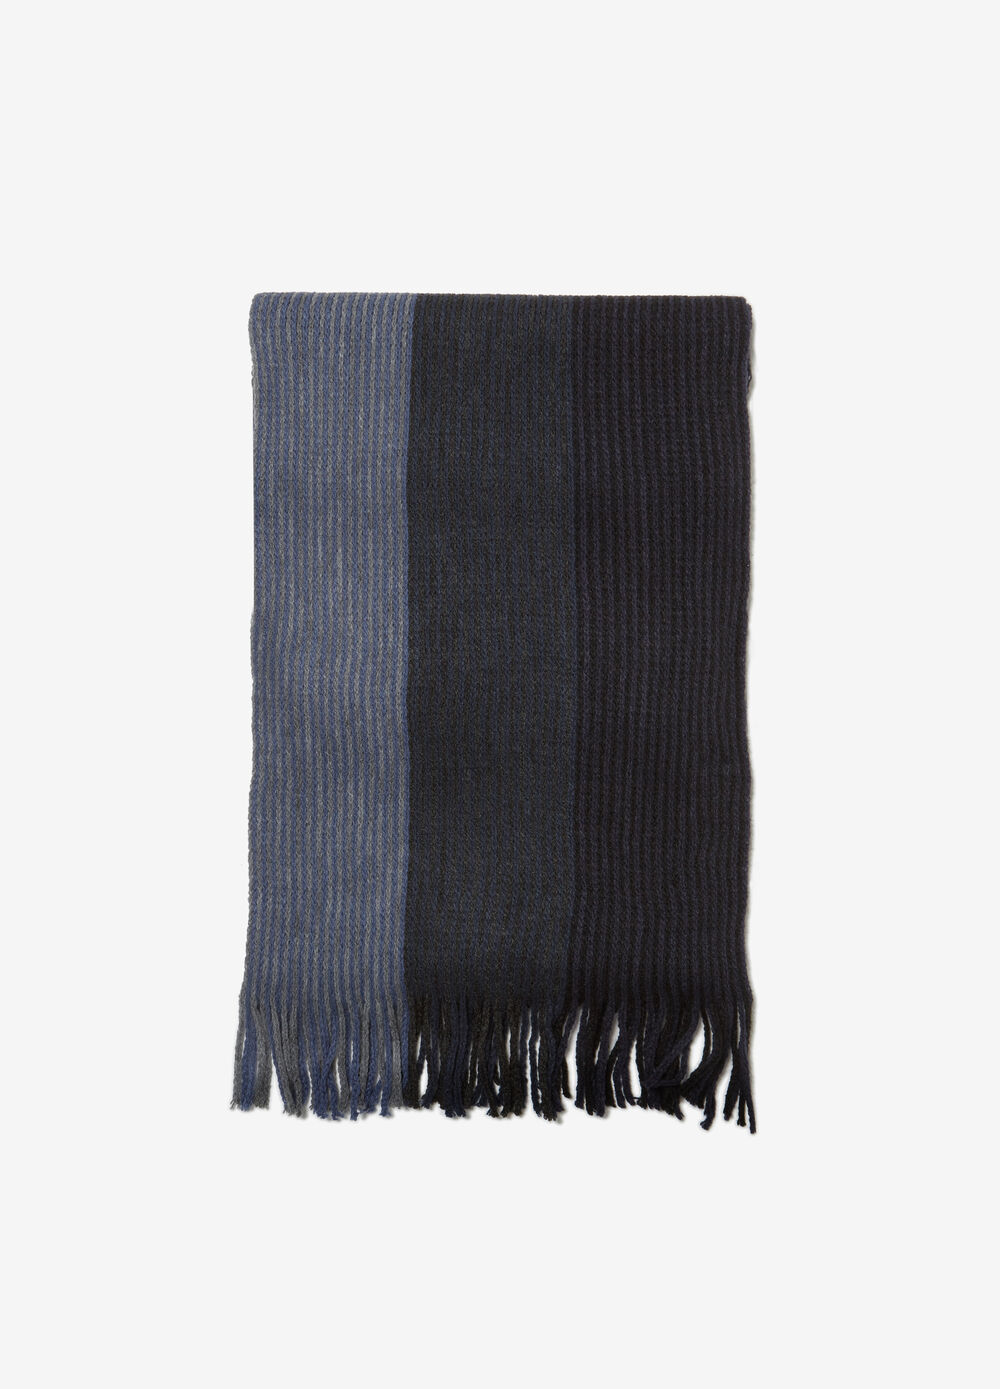 Scarf with striped jacquard motif